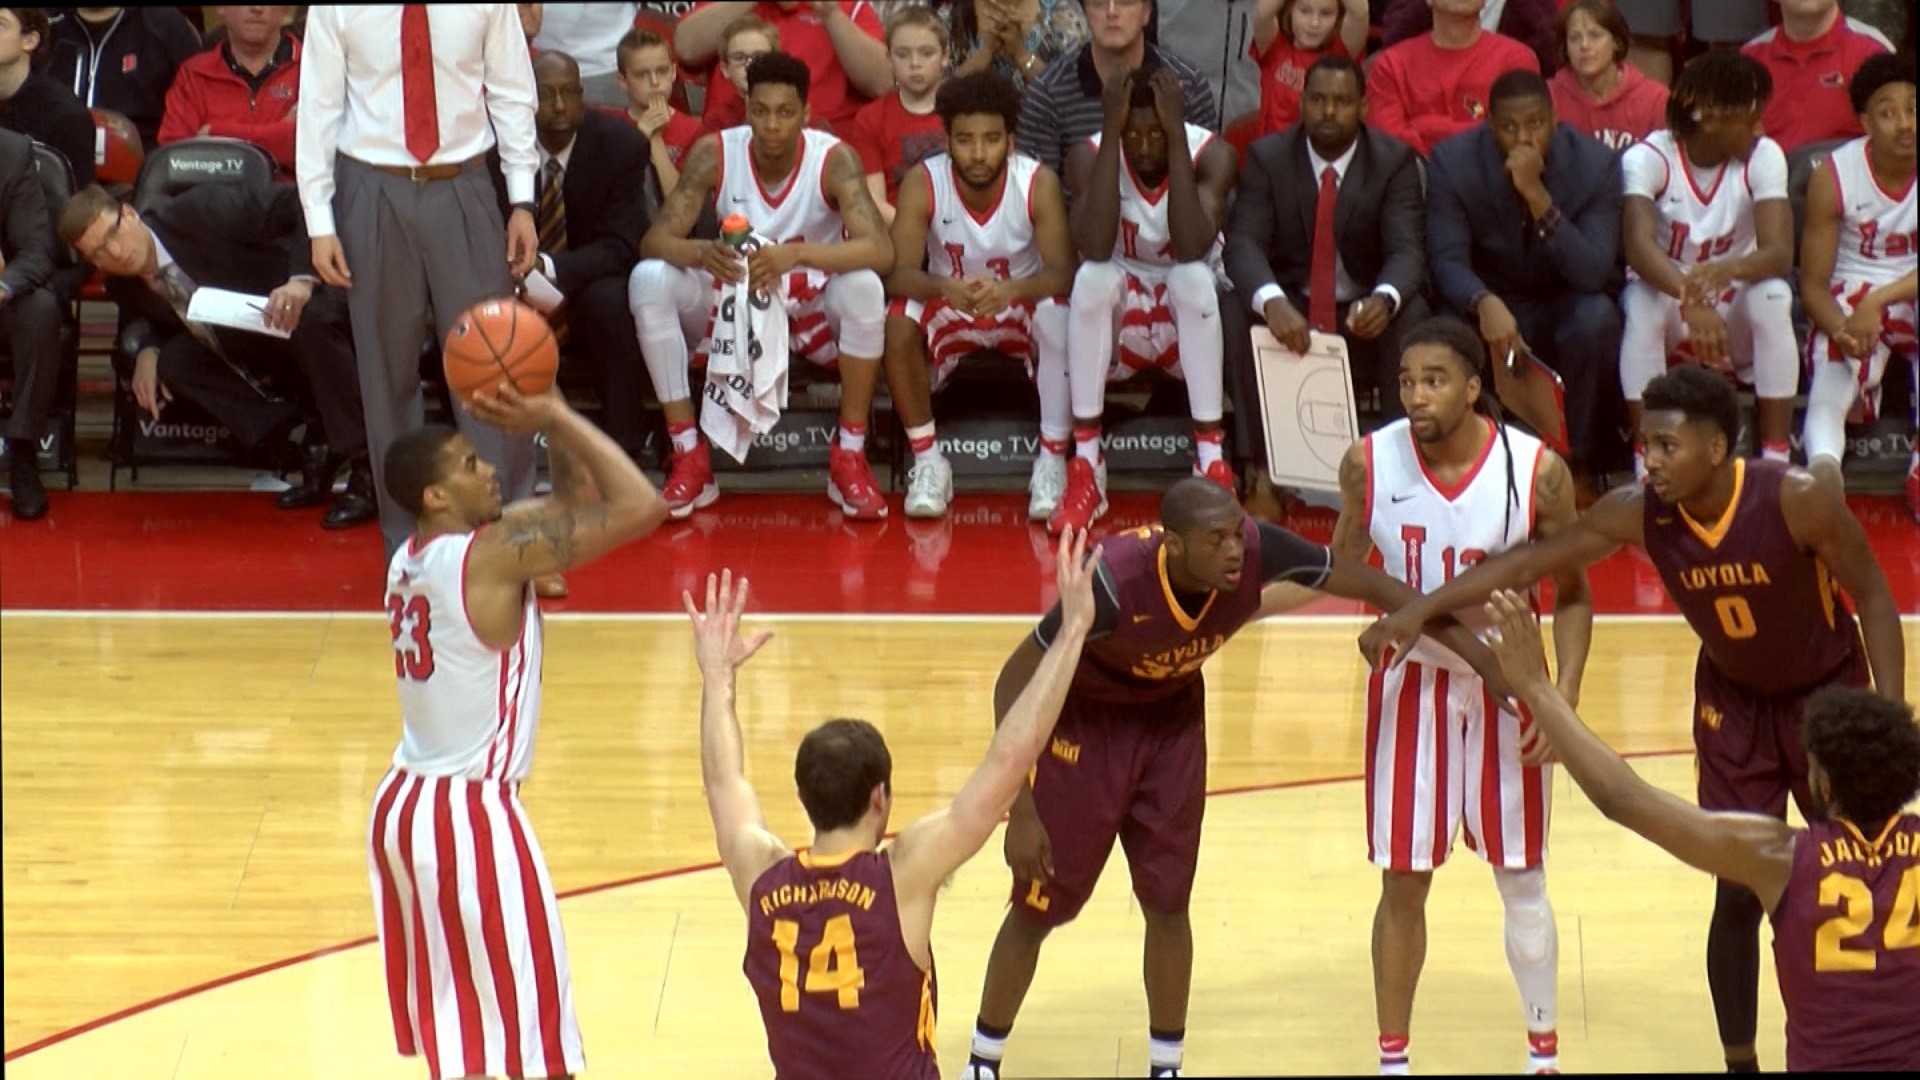 Deontae Hawkins hits go-ahead free throw vs. Loyola